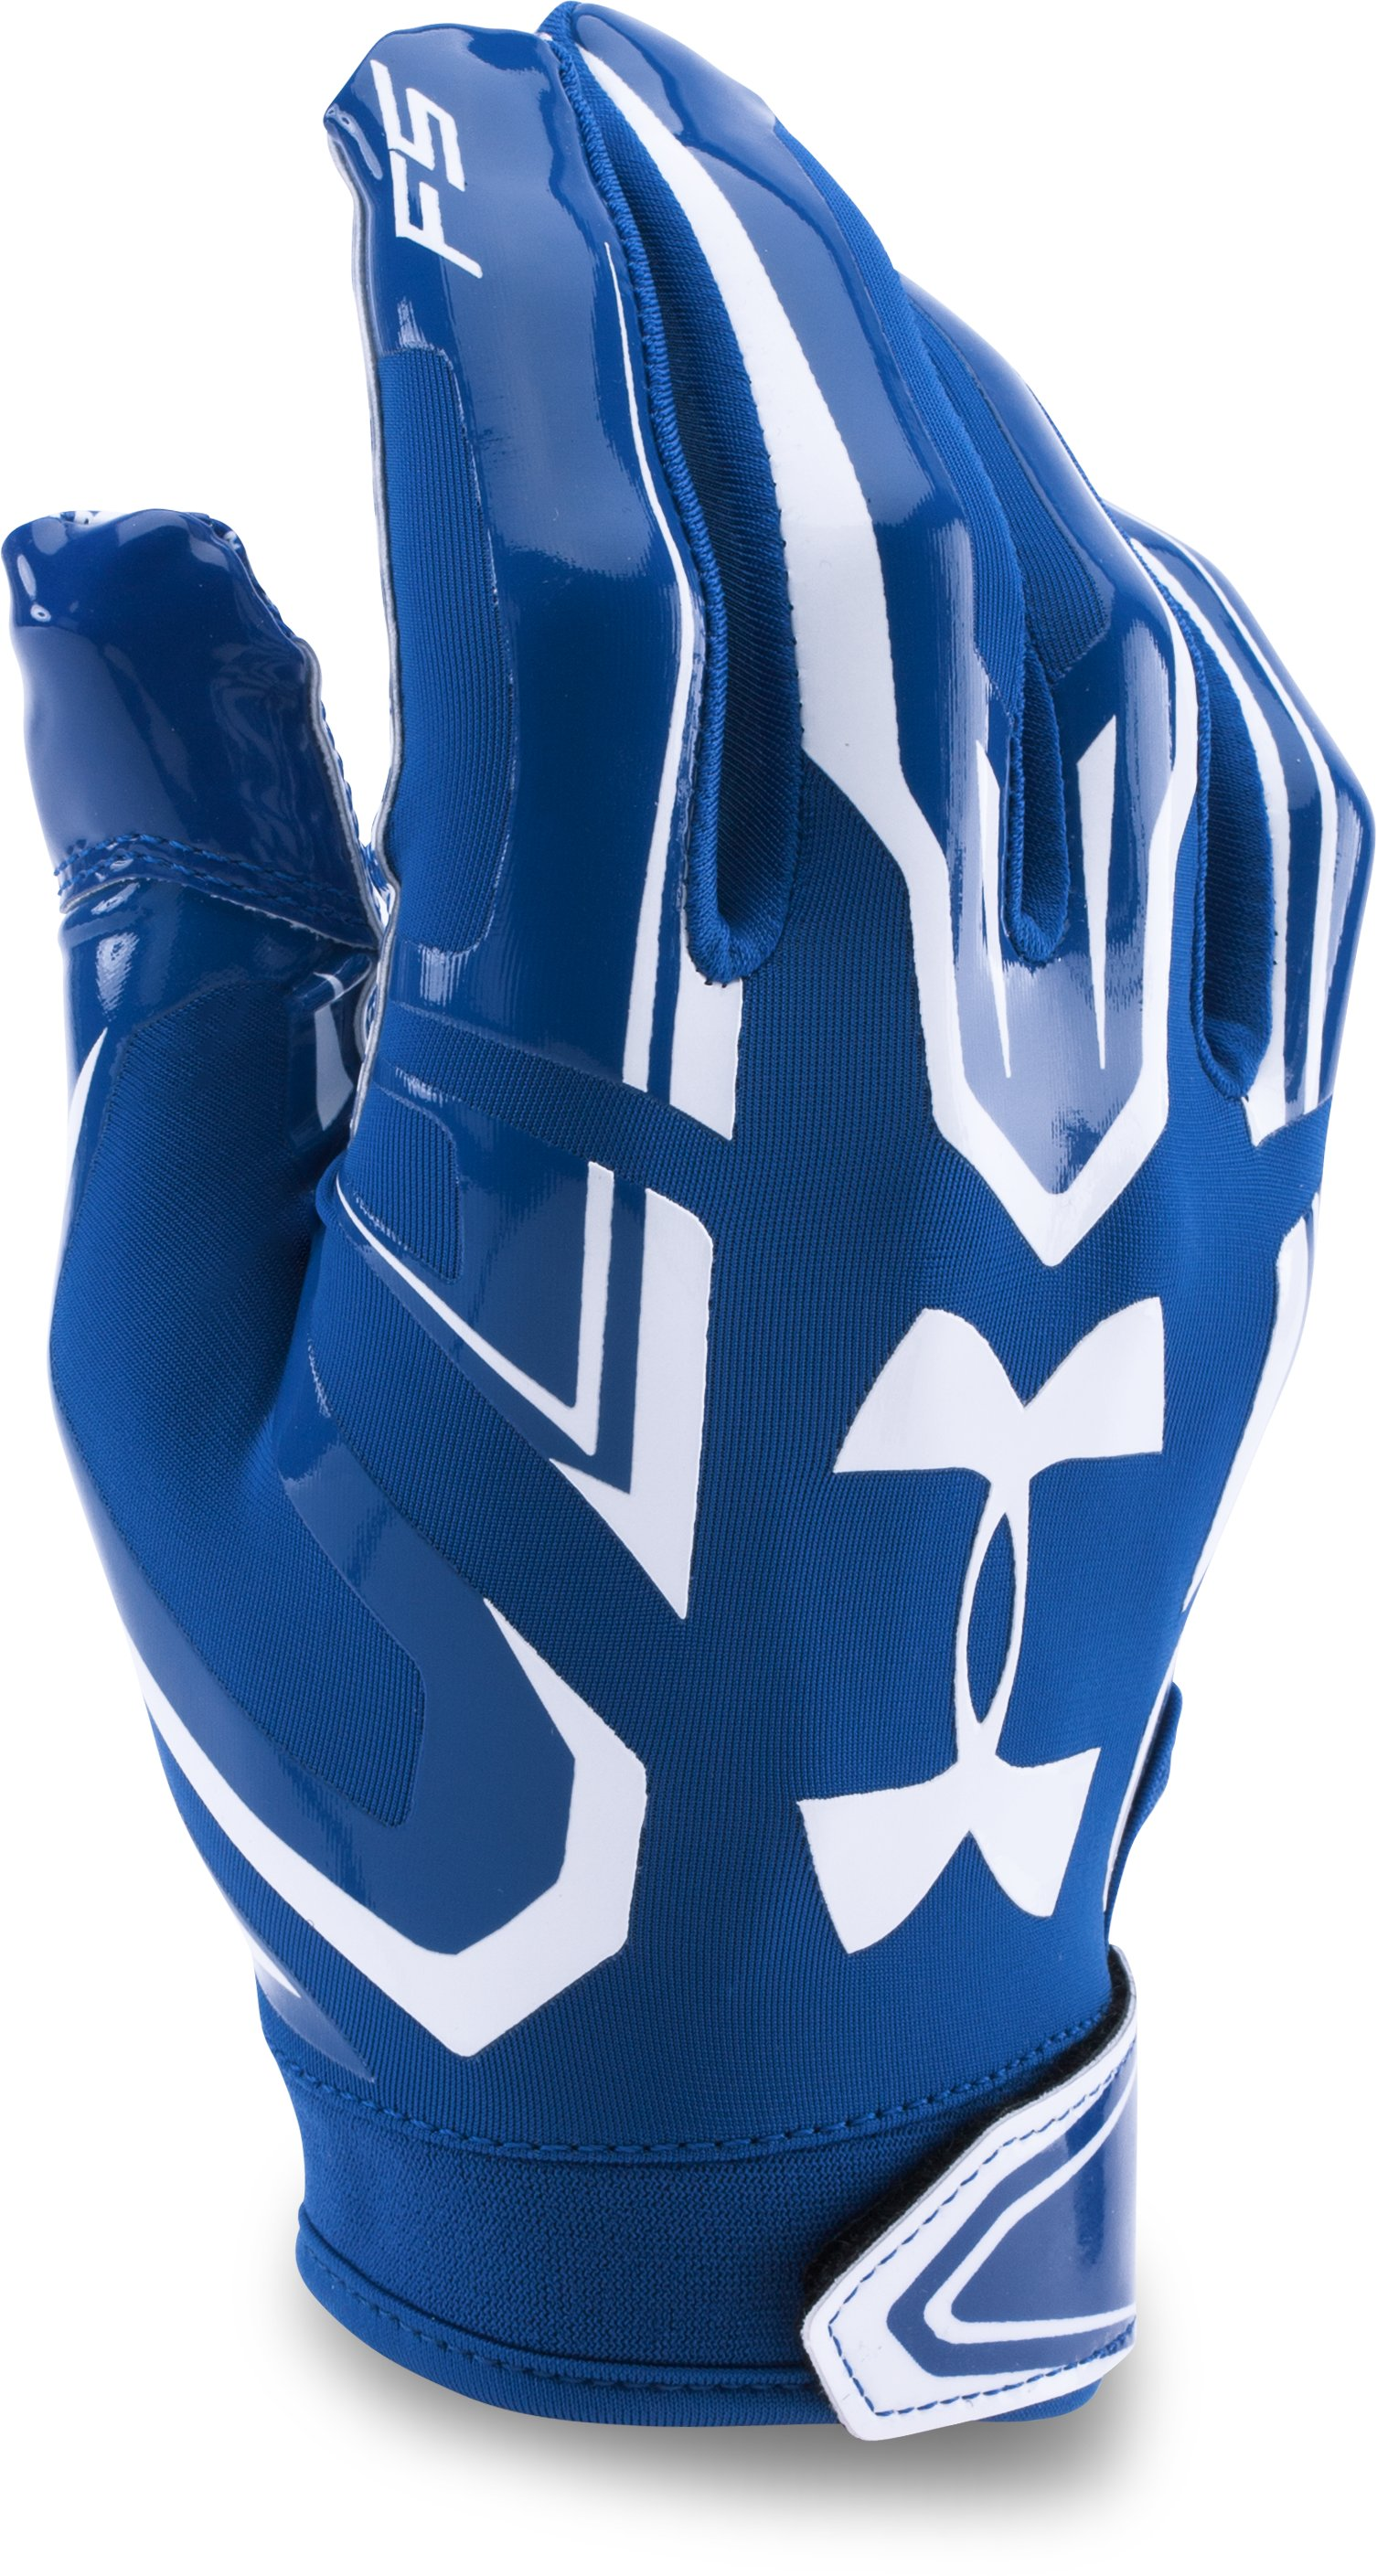 royal gloves Boys' UA F5 Football Gloves Great product...Great receiver gloves...Sweet Gloves